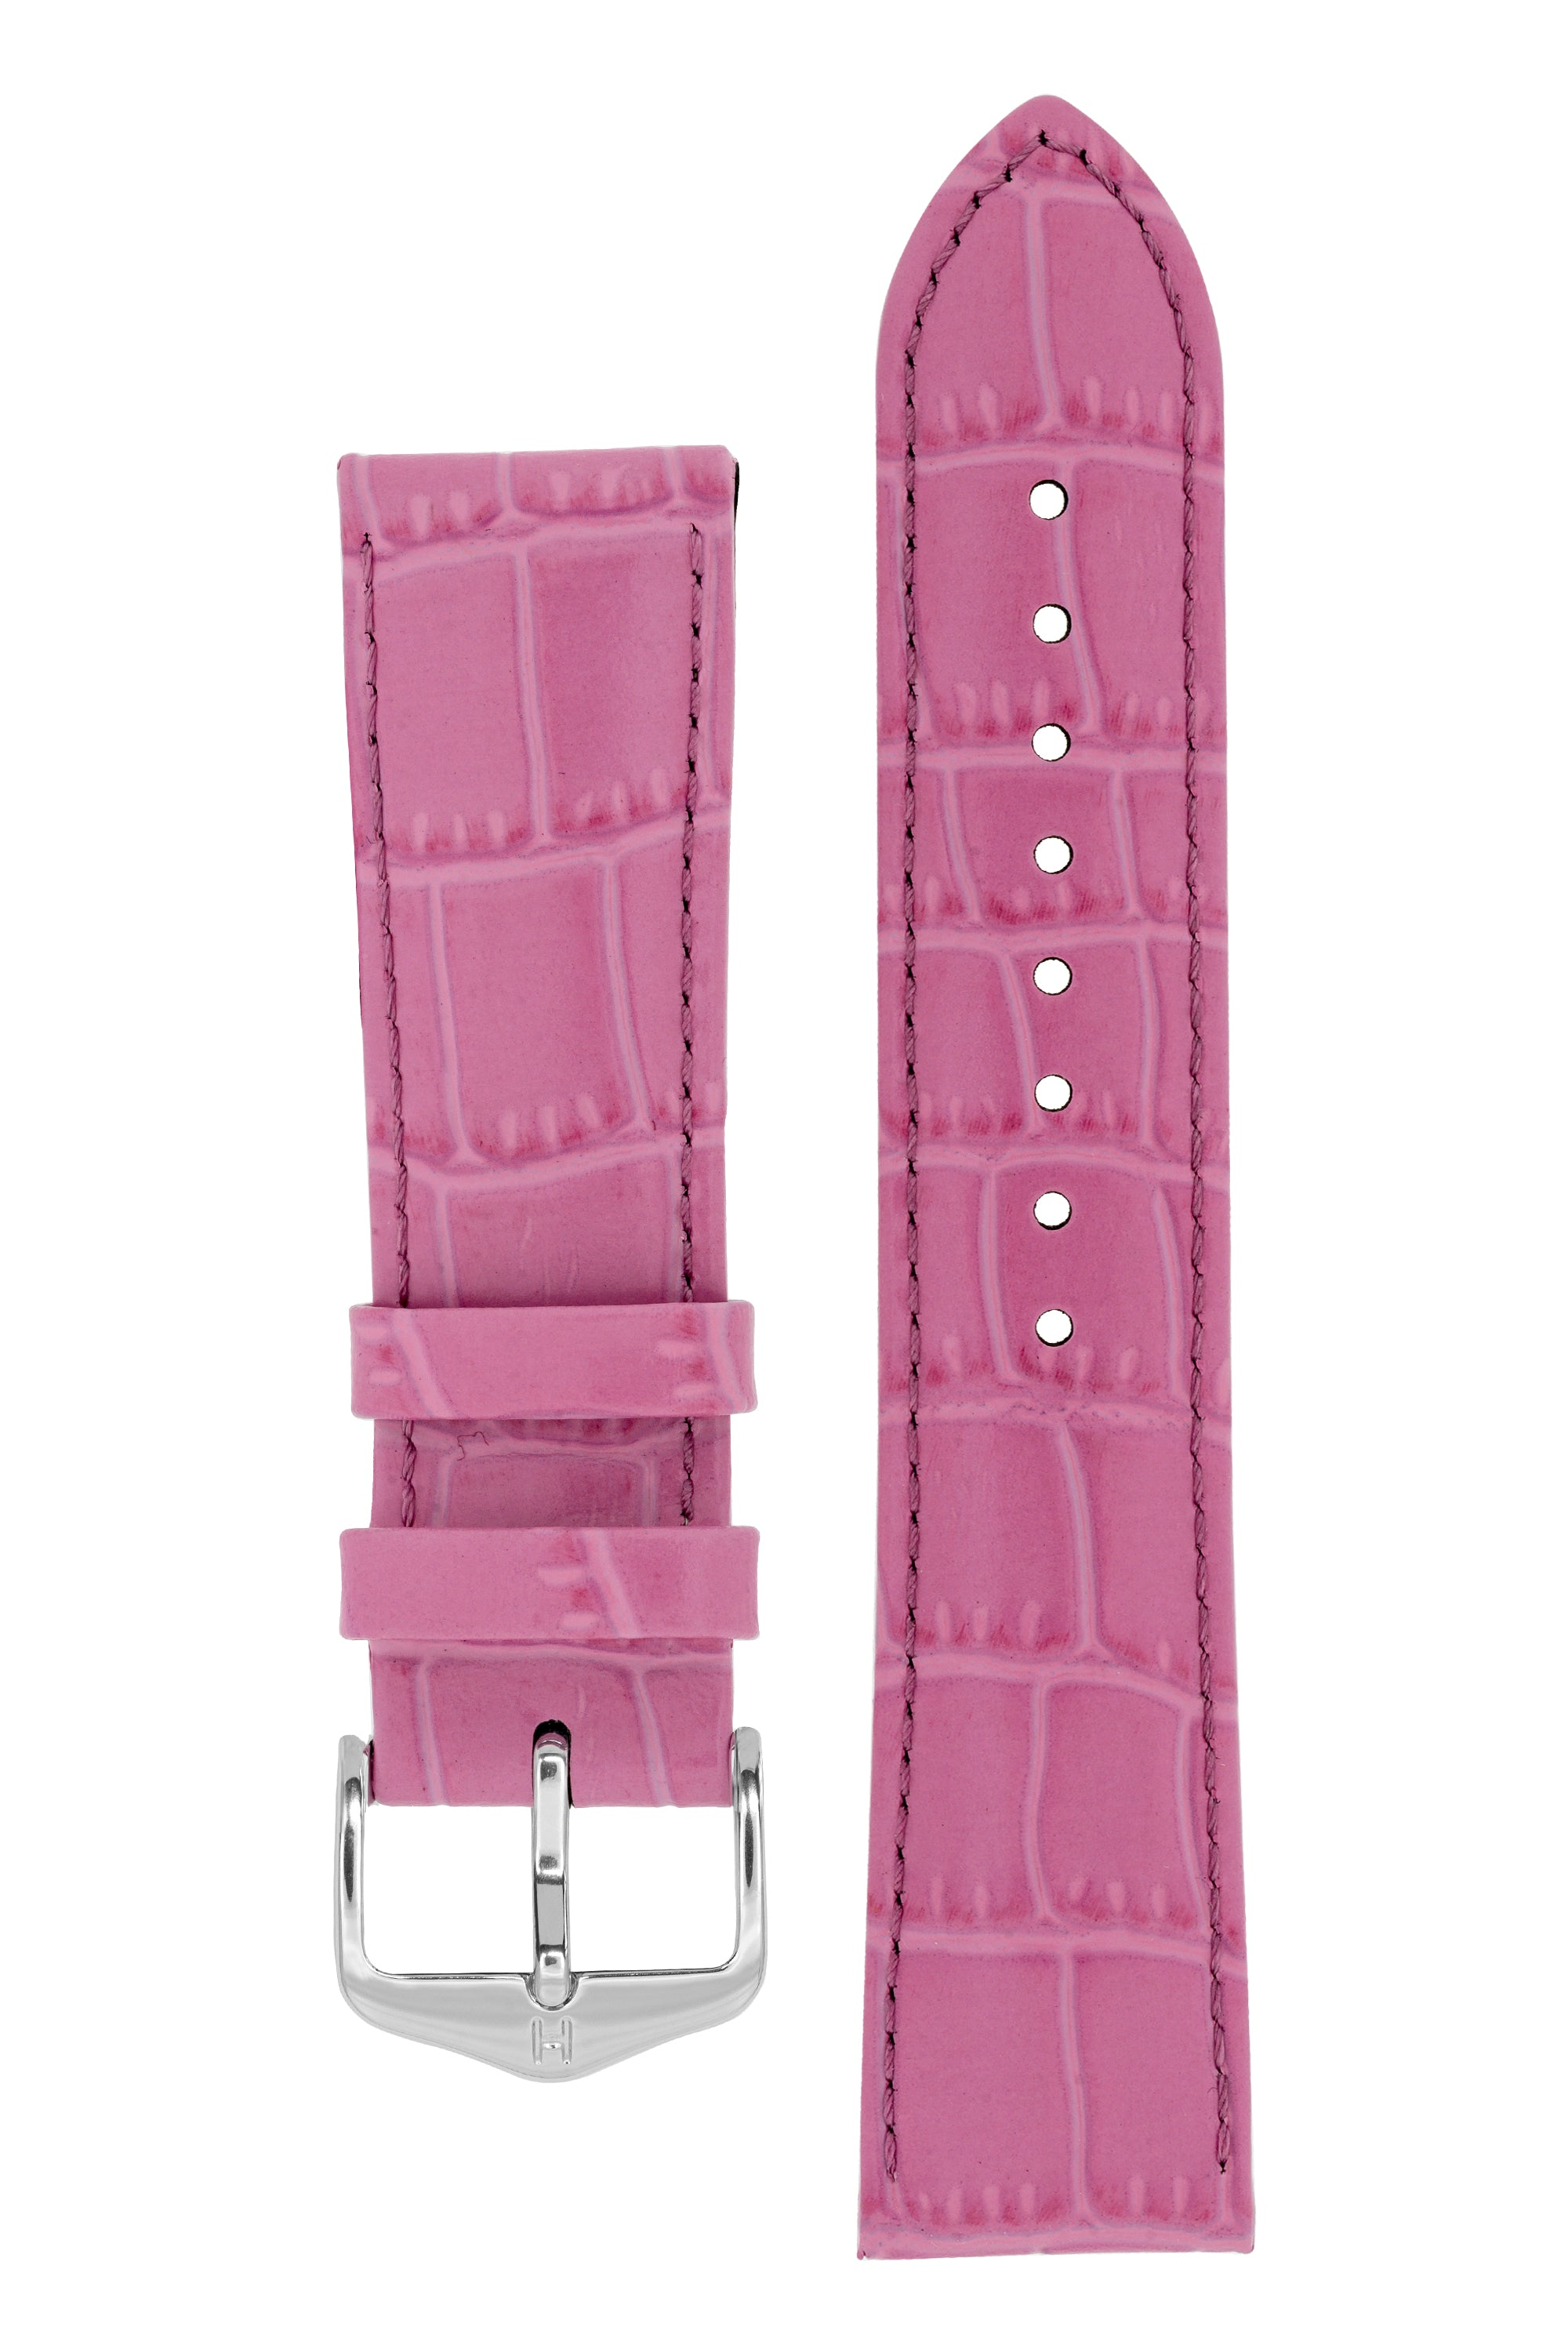 Hirsch LOUISIANALOOK Alligator Embossed Leather Watch Strap in PINK